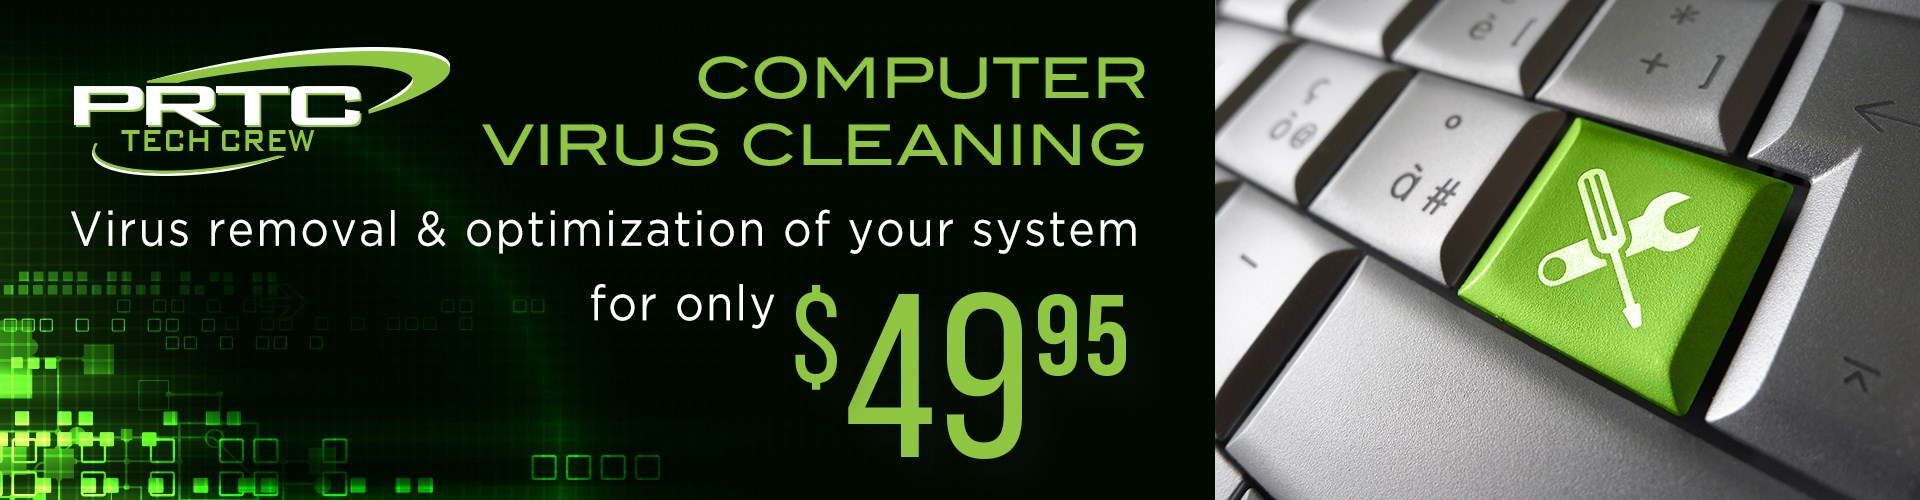 Computer Virus Cleaning